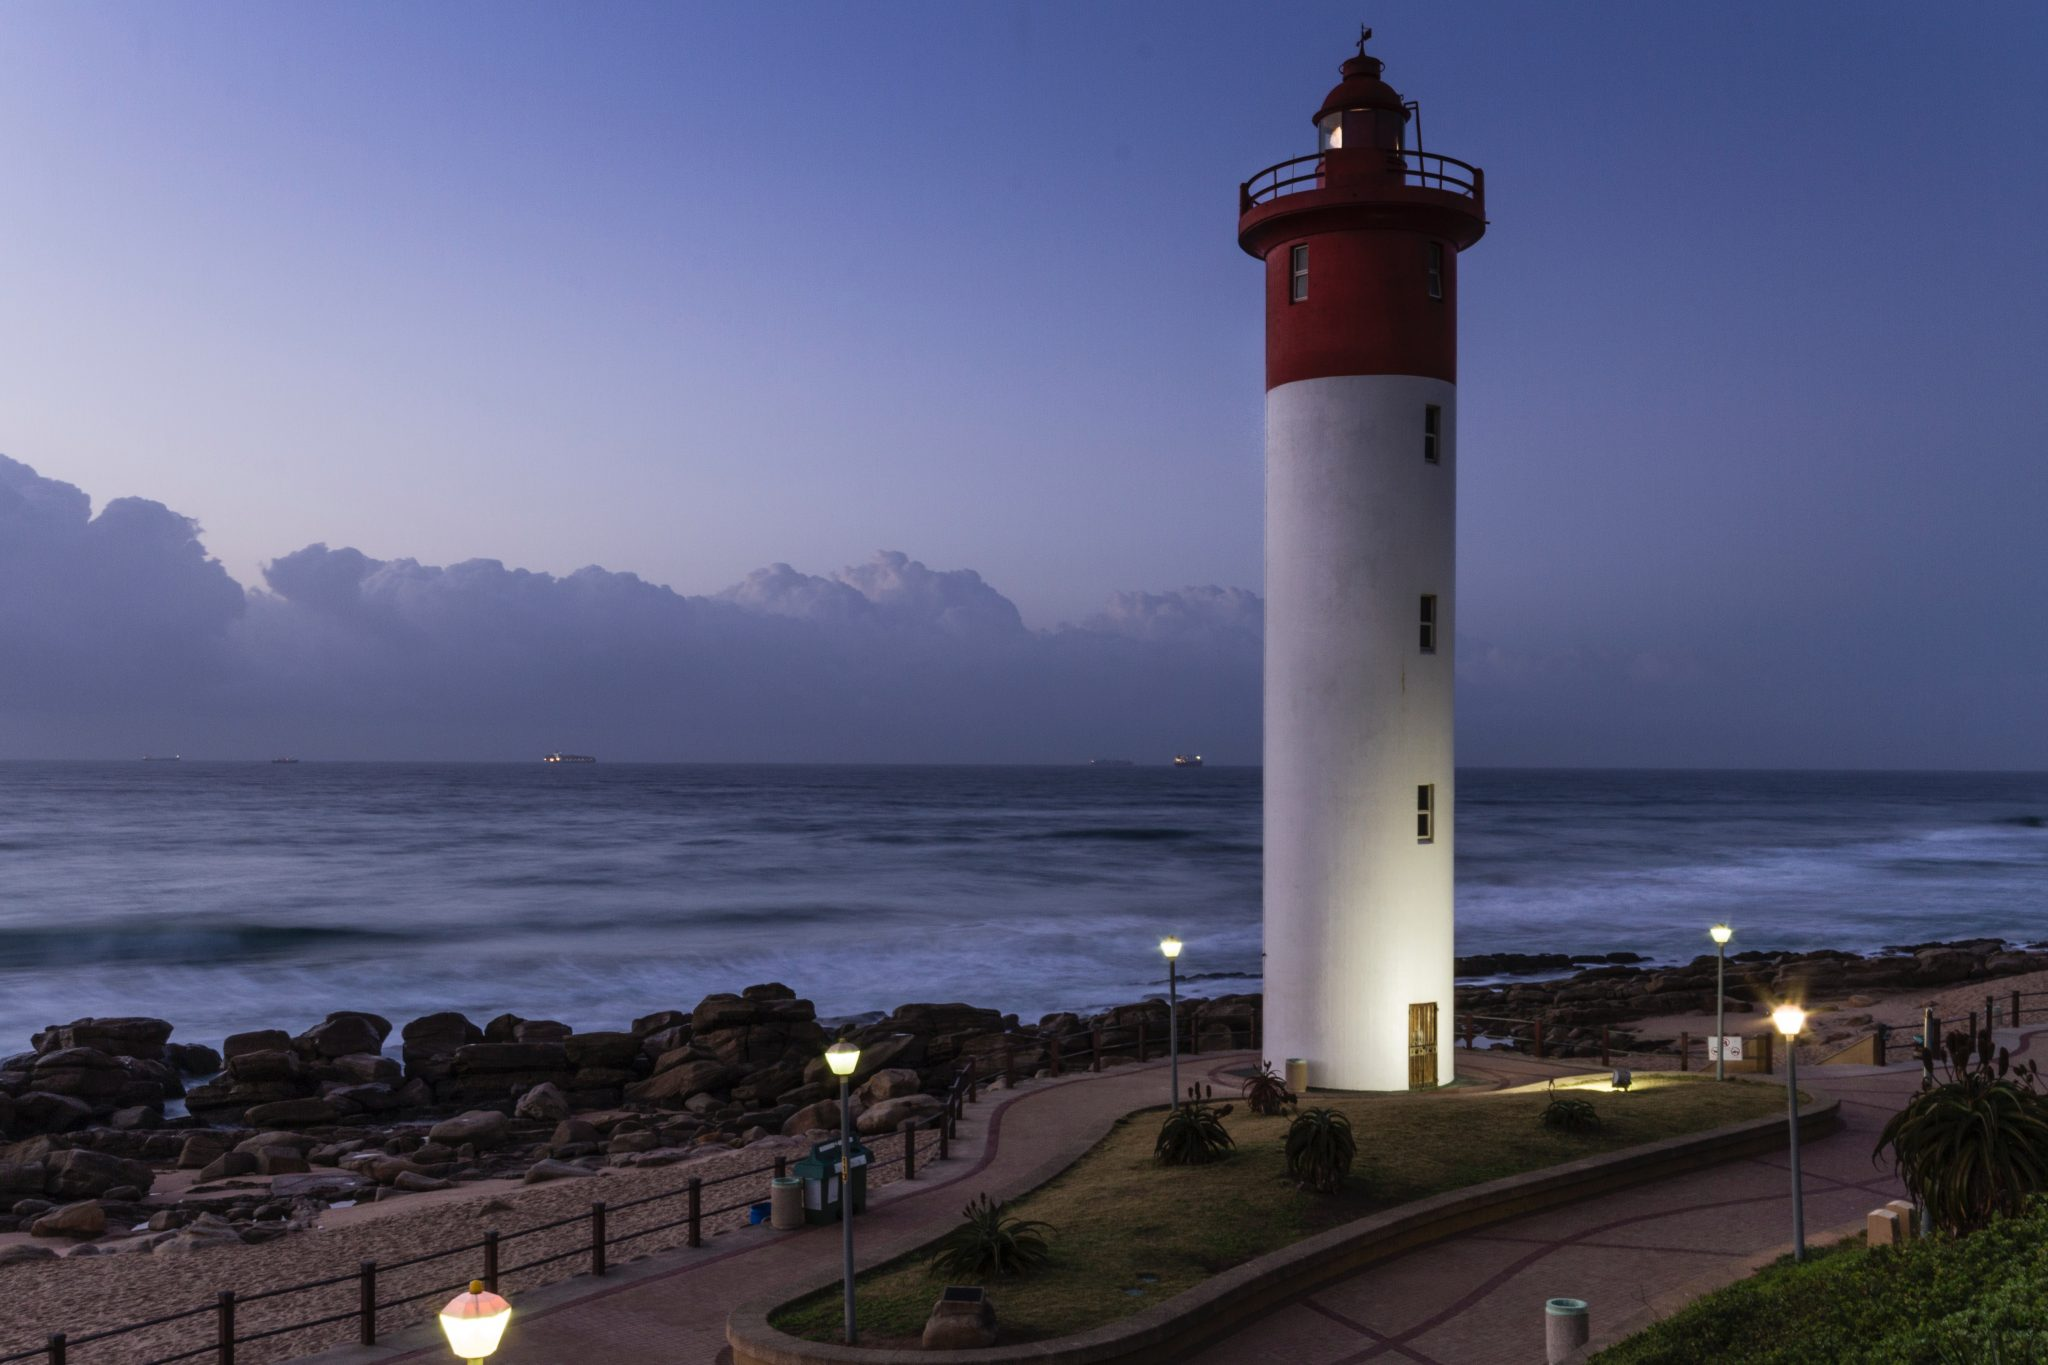 10 PLACES YOU NEED TO VISIT IN KWAZULU-NATAL